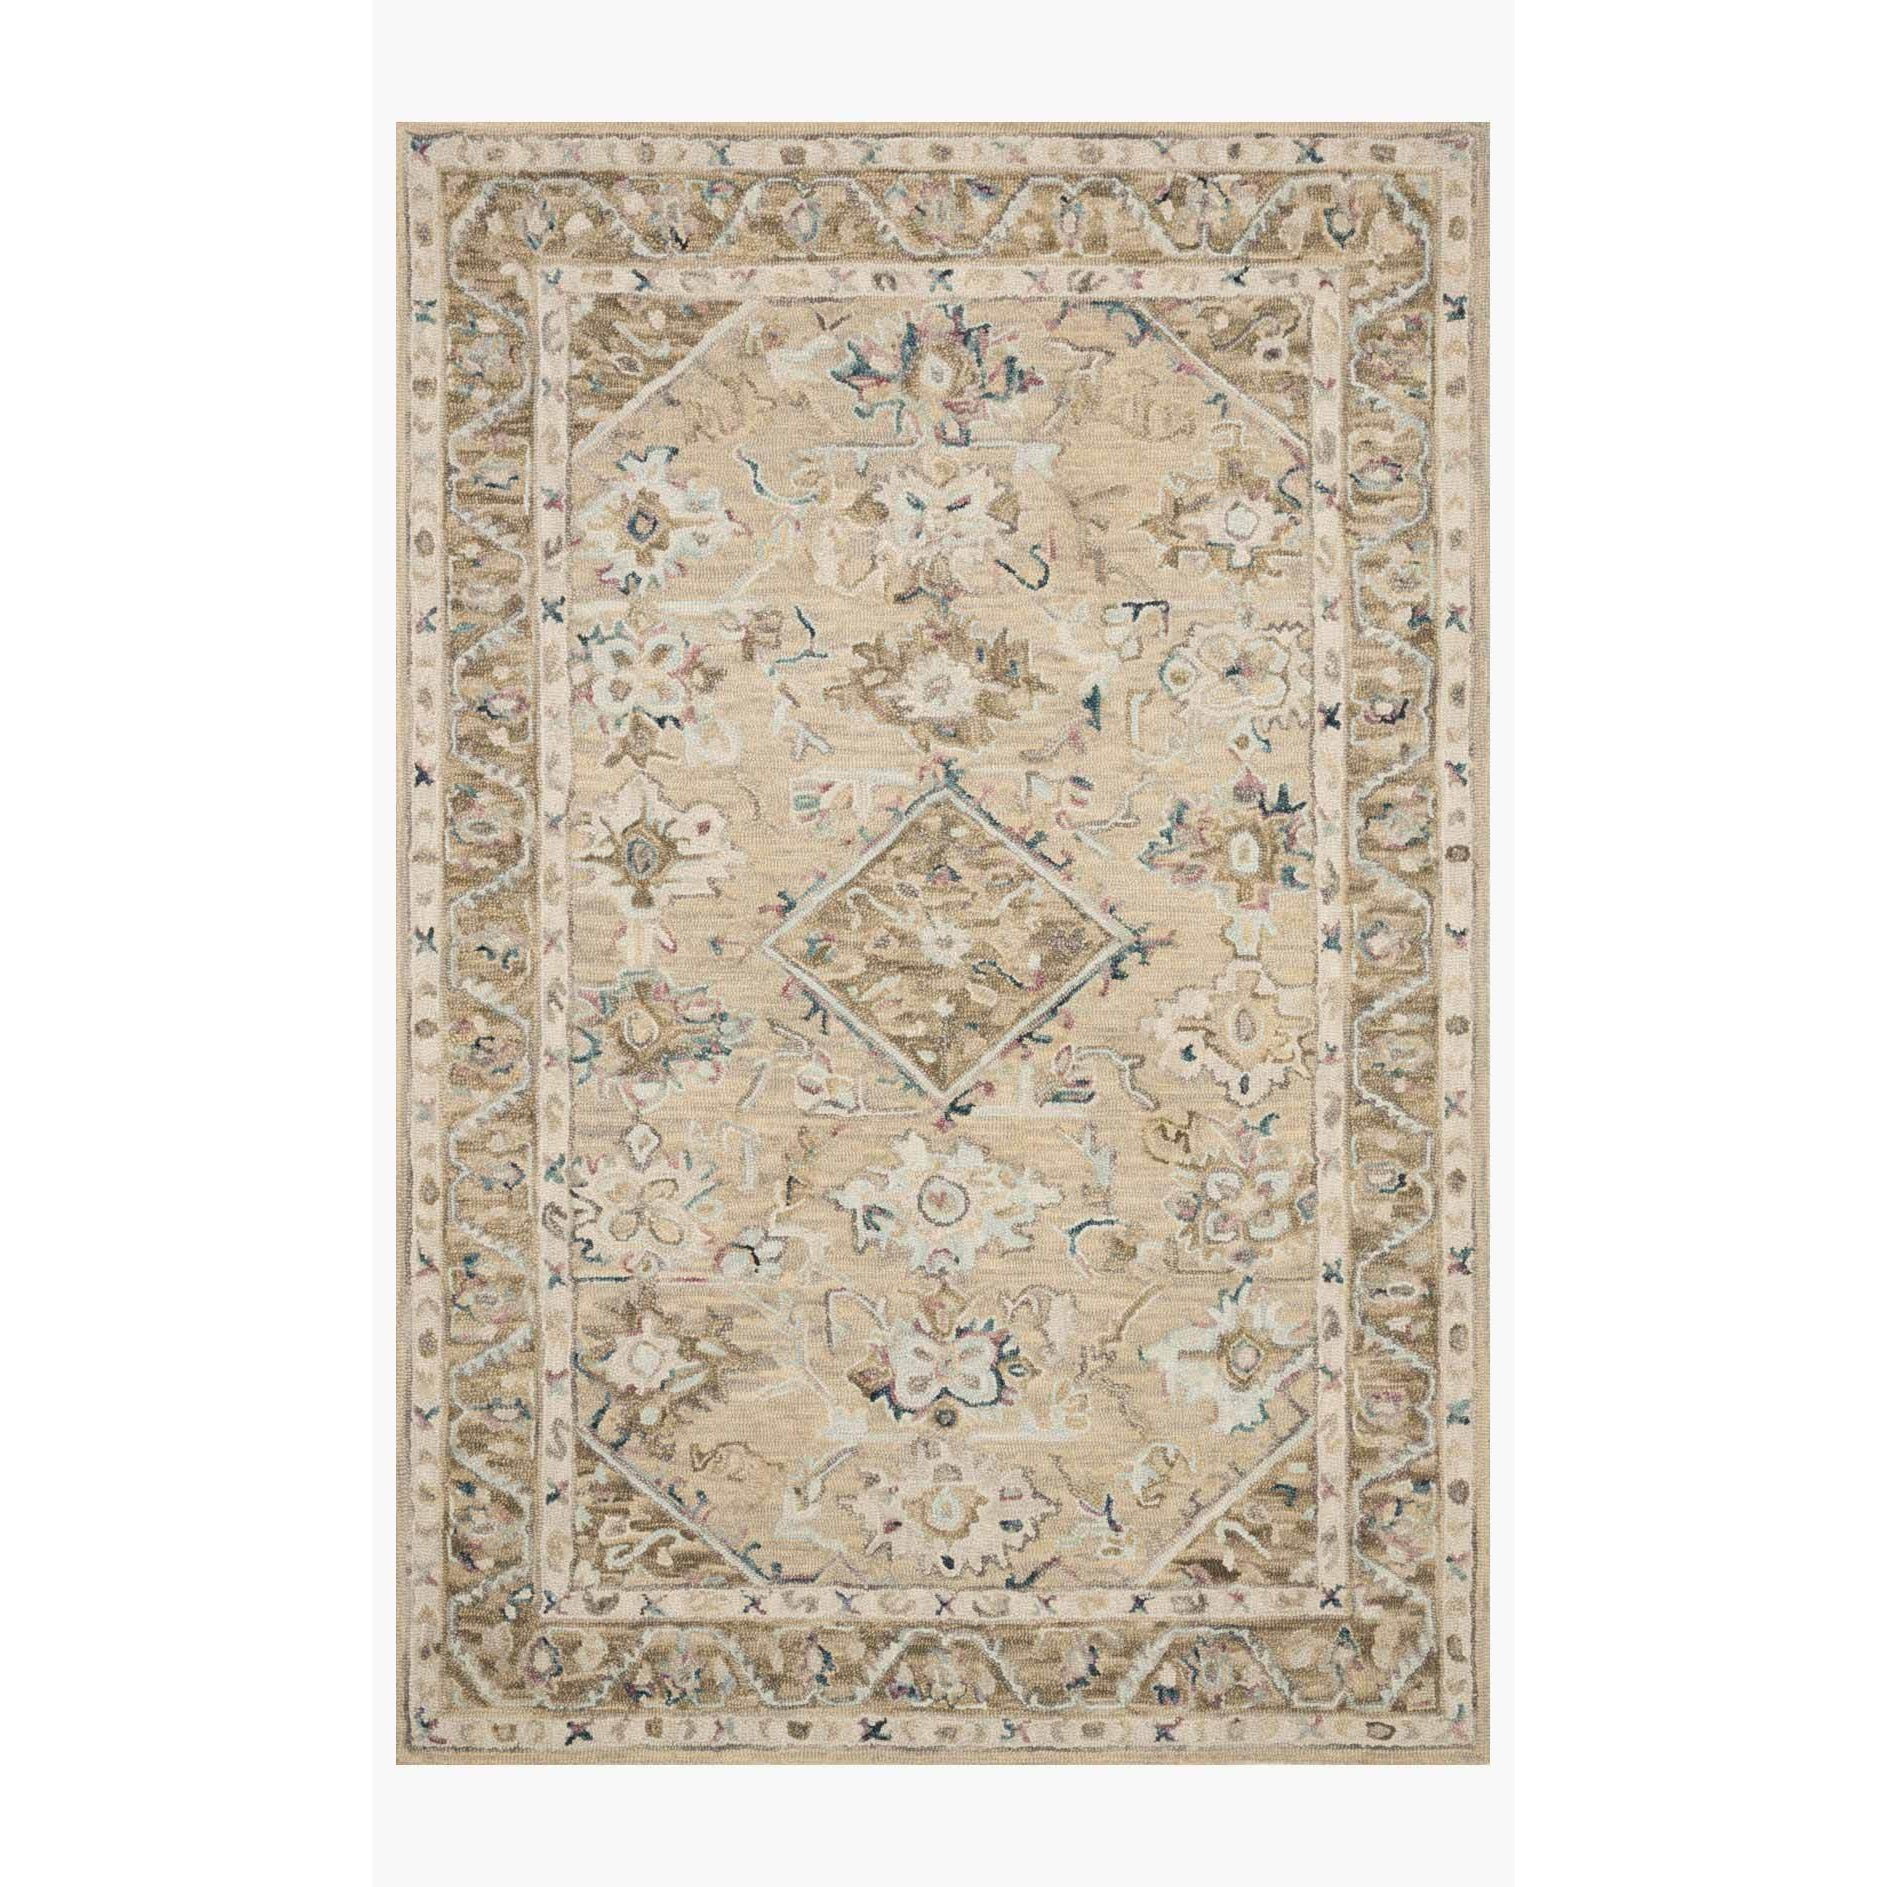 Beatty Rugs by Loloi - BEA-02 - Beige / Ivory-Loloi Rugs-Blue Hand Home